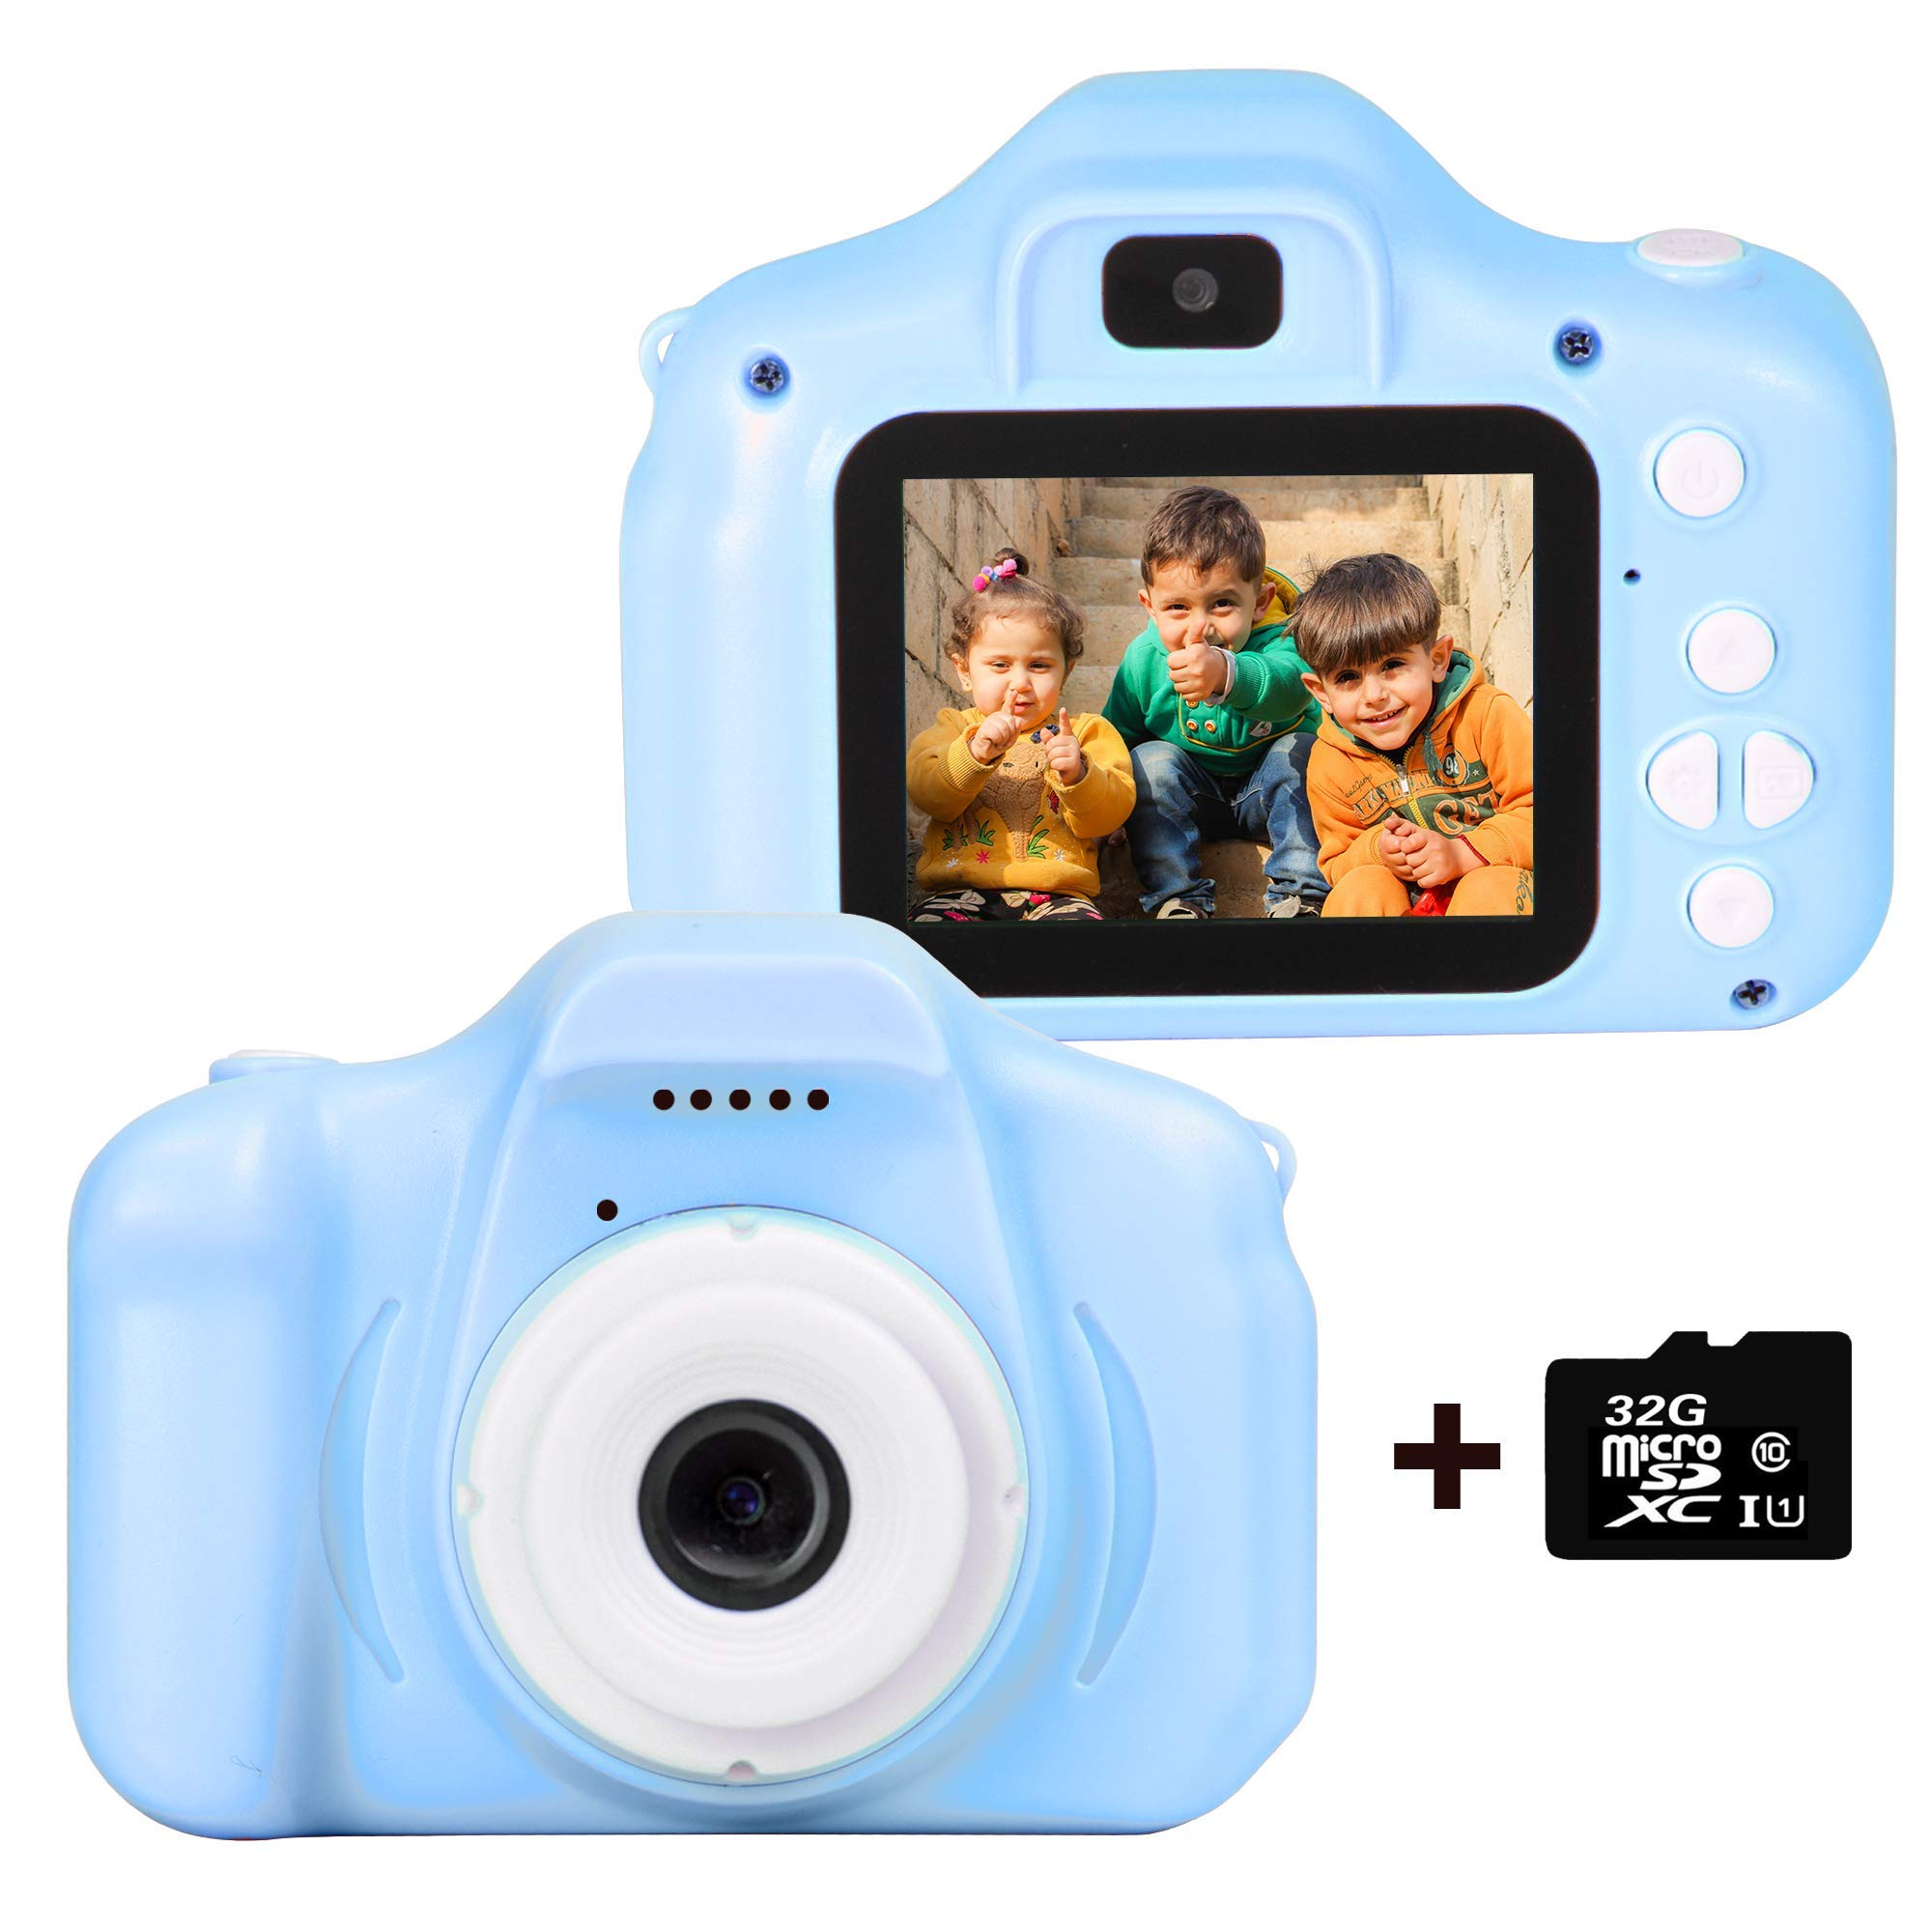 le-idea Kids Camera 1080P Dual 12MP Mini 2.0 inch IPS Display Shockproof Child Digital Selfie HD Camera Camcorder Gifts for 3-10 Year Old Girls & Boys Outdoor Play, Blue (32GB Memory Card Included)